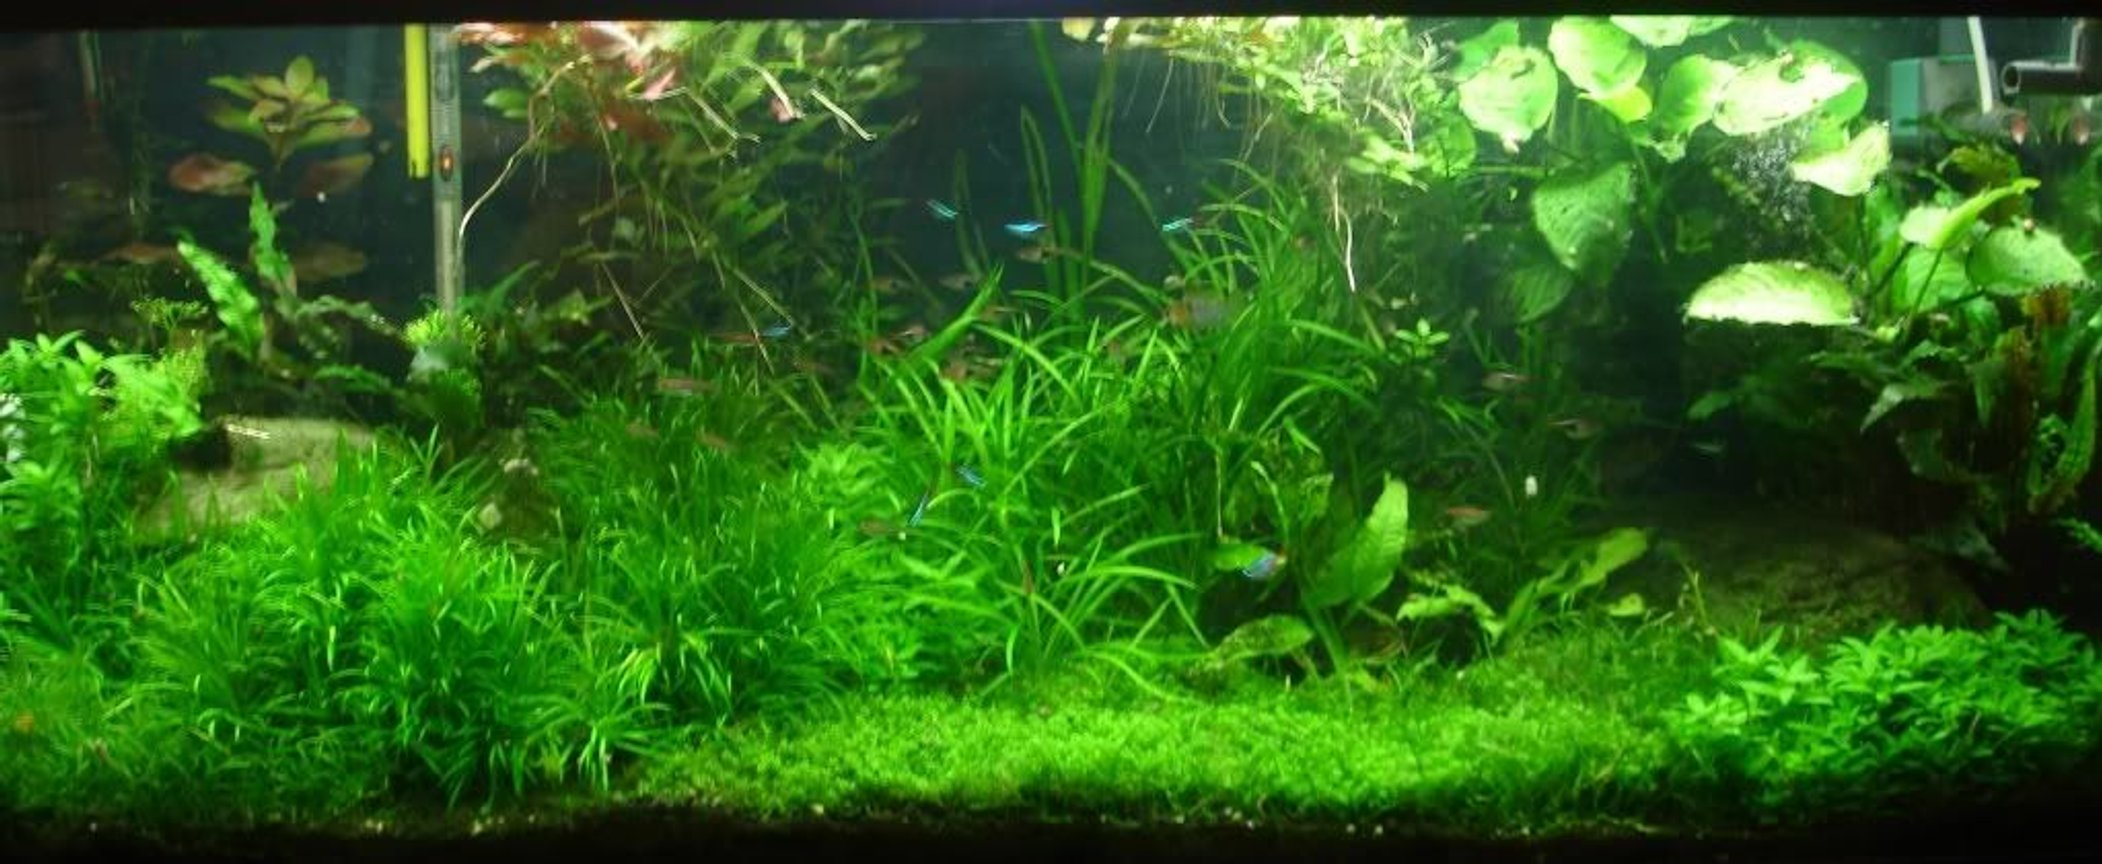 75 gallons planted tank (mostly live plants and fish) - 75G Pressurized CO2 tank, DIY CO2 reactor, 216 Watts 108W T5HO 8hrs per day 216 watt 1 hr per day, PH controller for CO2 management